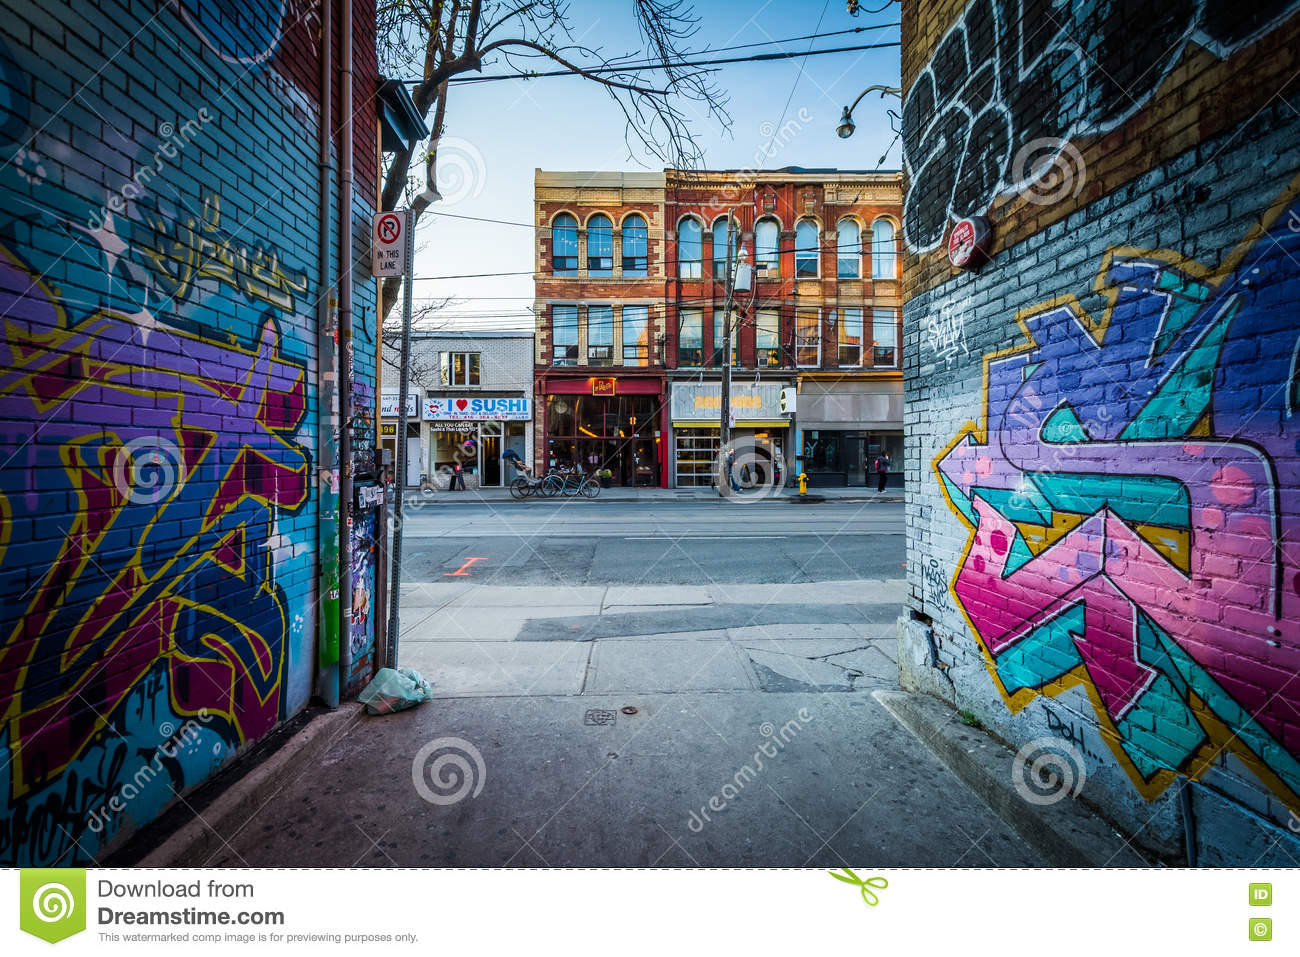 Street art in graffiti alley and buildings on queen street west in the fashion district